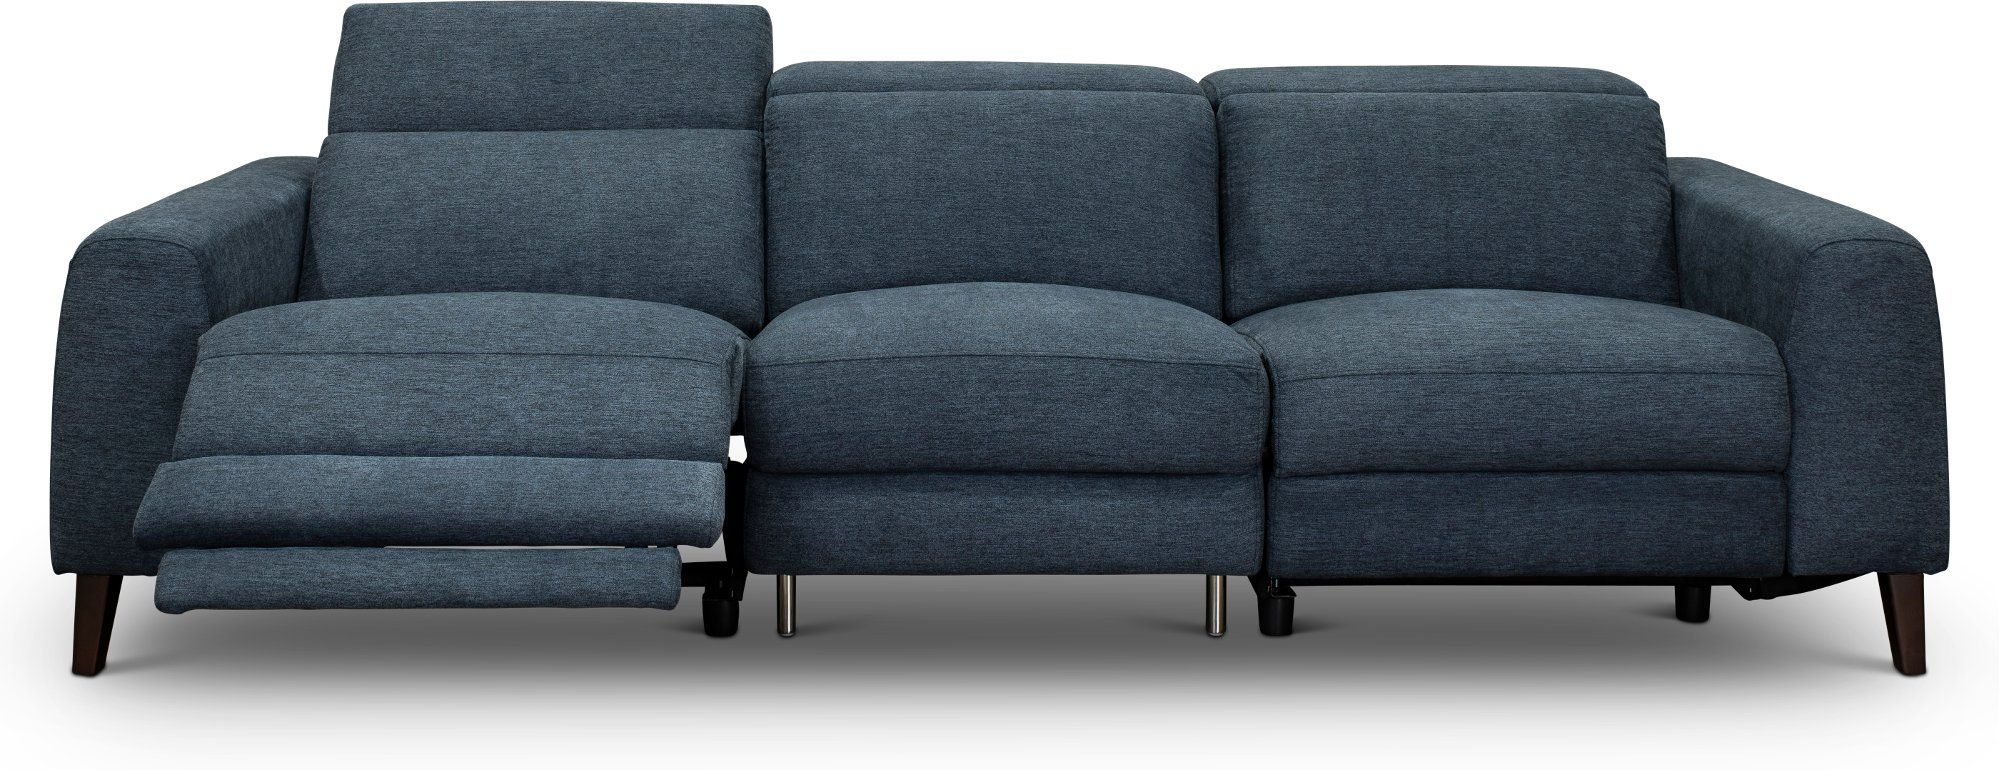 Navy Blue Transitional Power Reclining Sofa Royals With Images